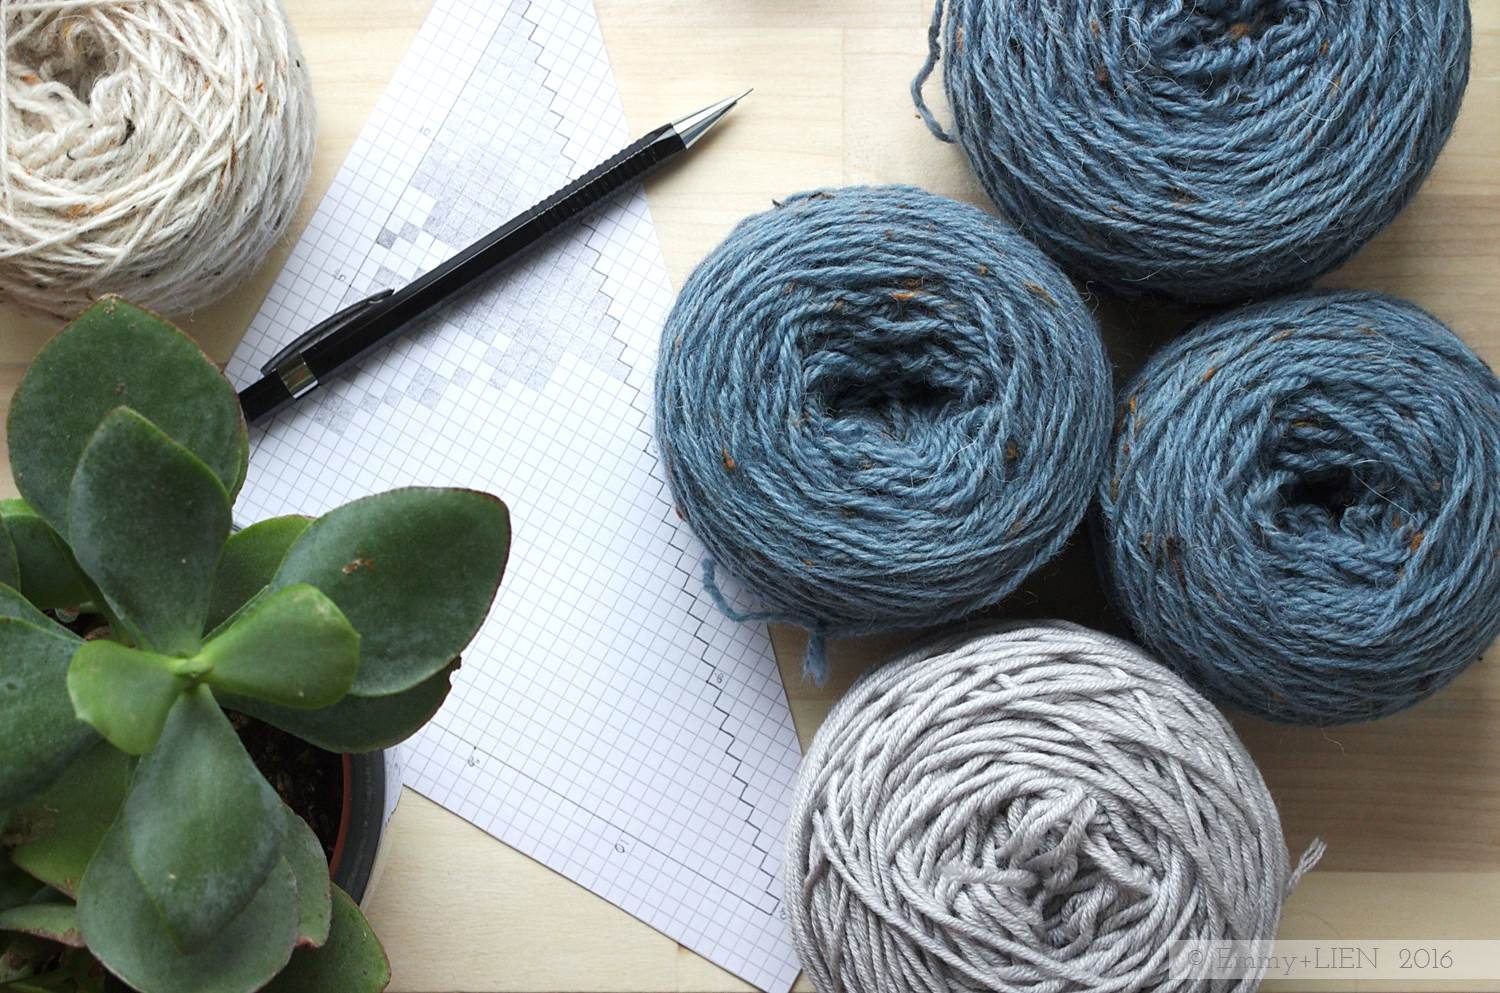 Doodling with yarn | Yarn Inspiration